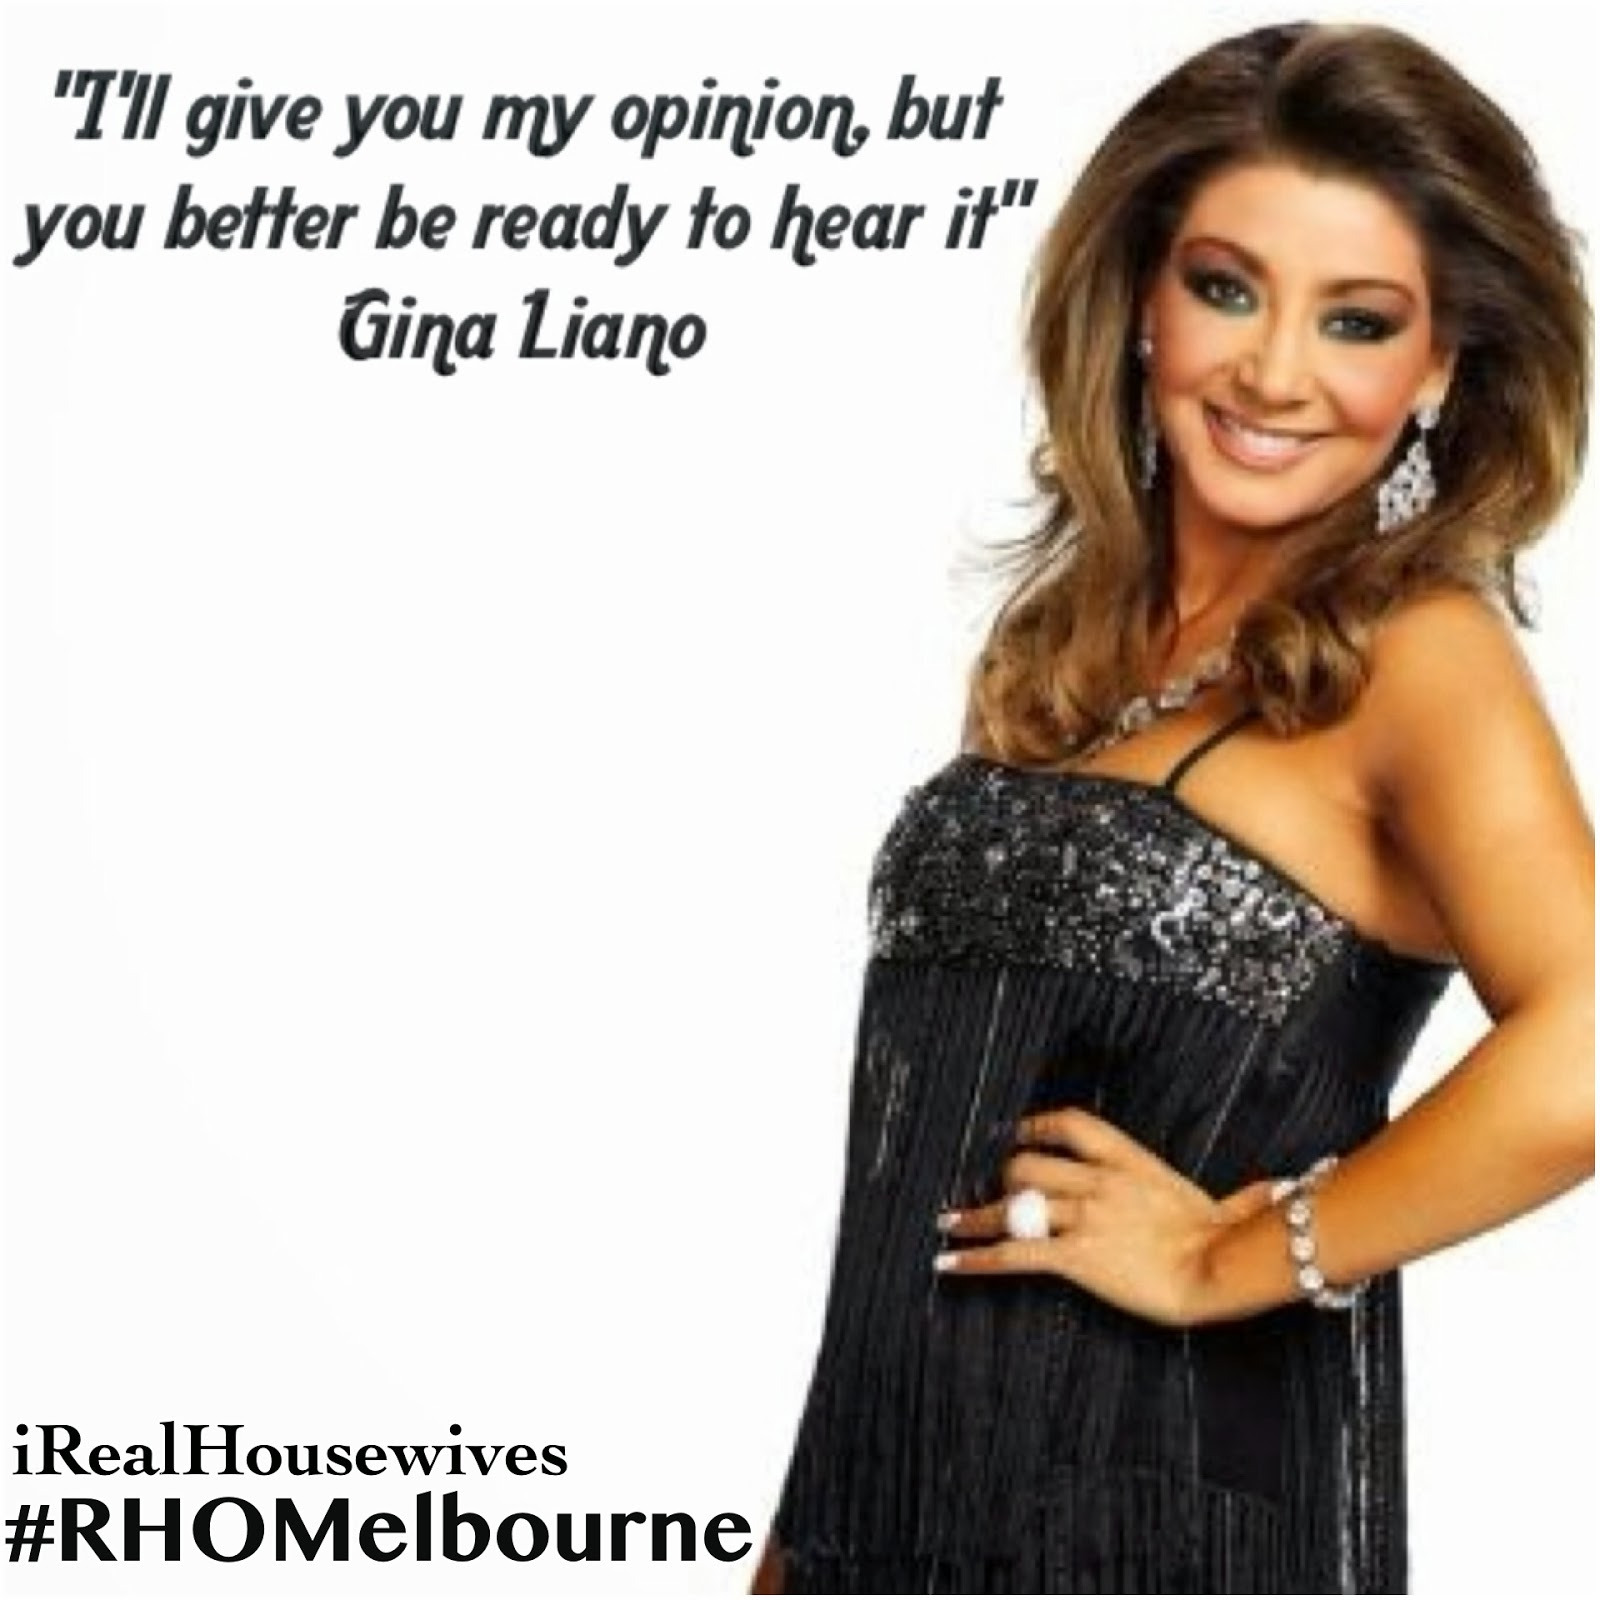 Hot Gina Liano nude photos 2019